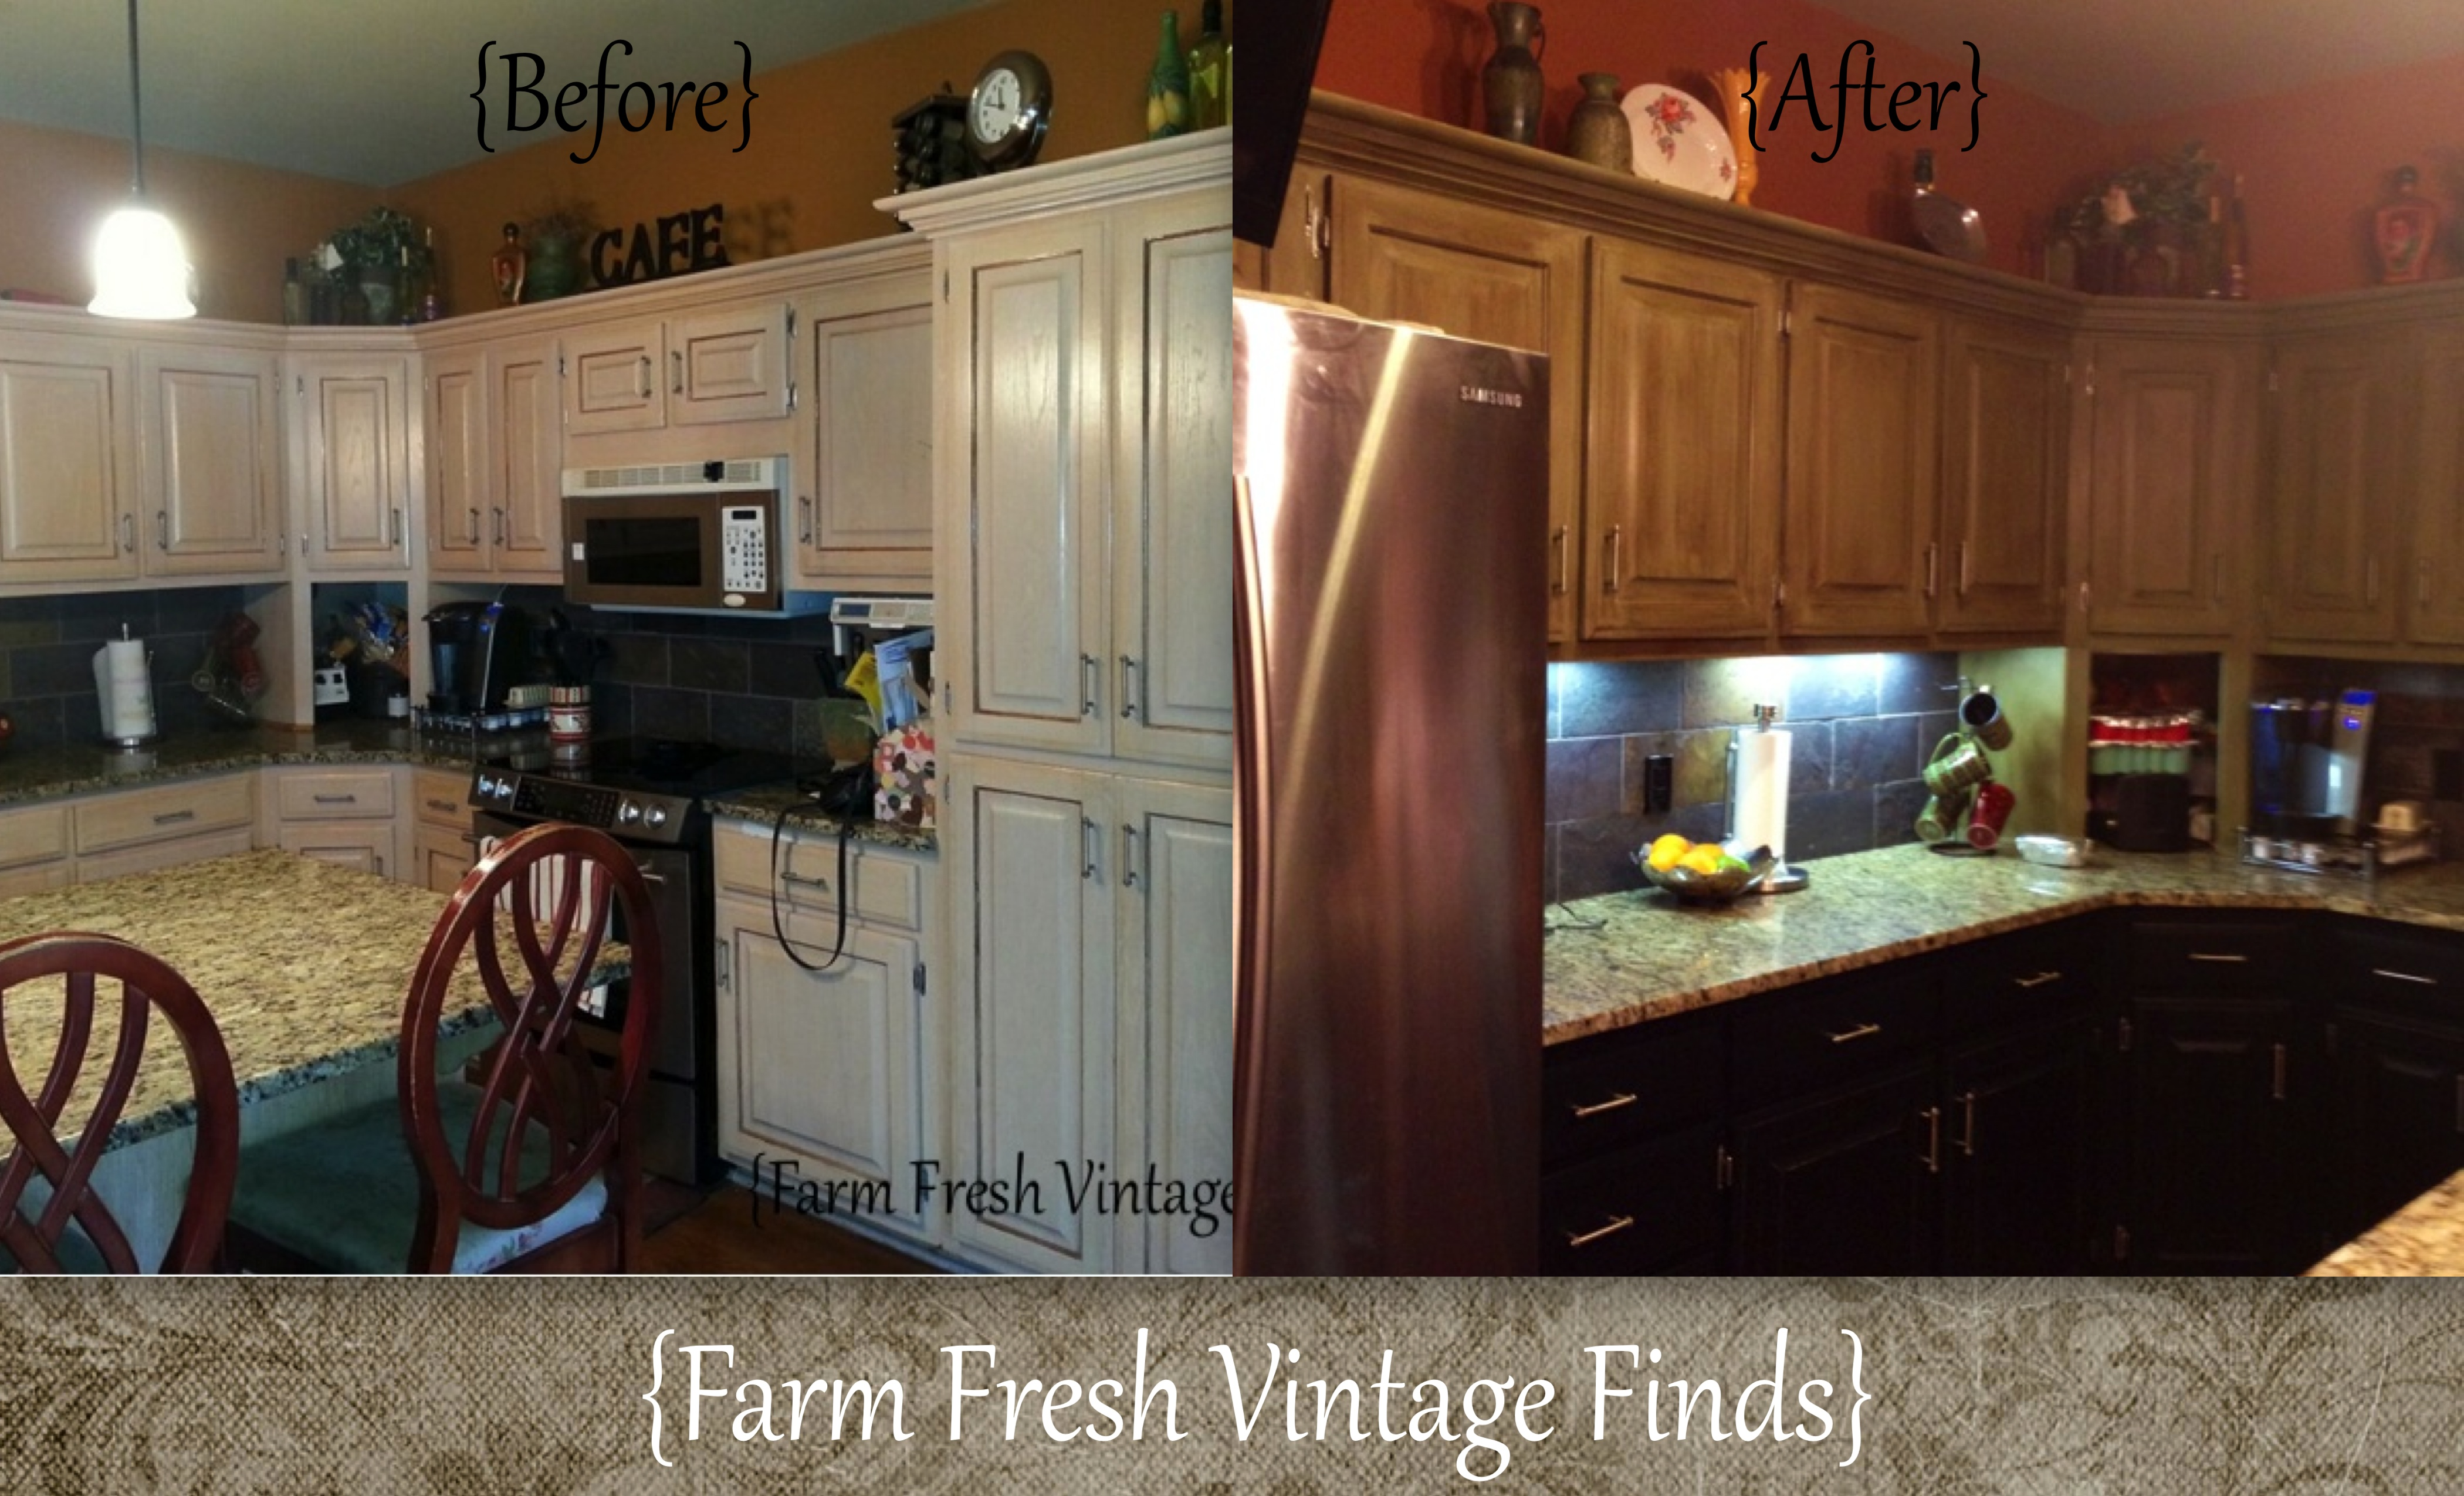 Oak Kitchen Cabinets In Annie Sloan Chateau Grey And Reclaim